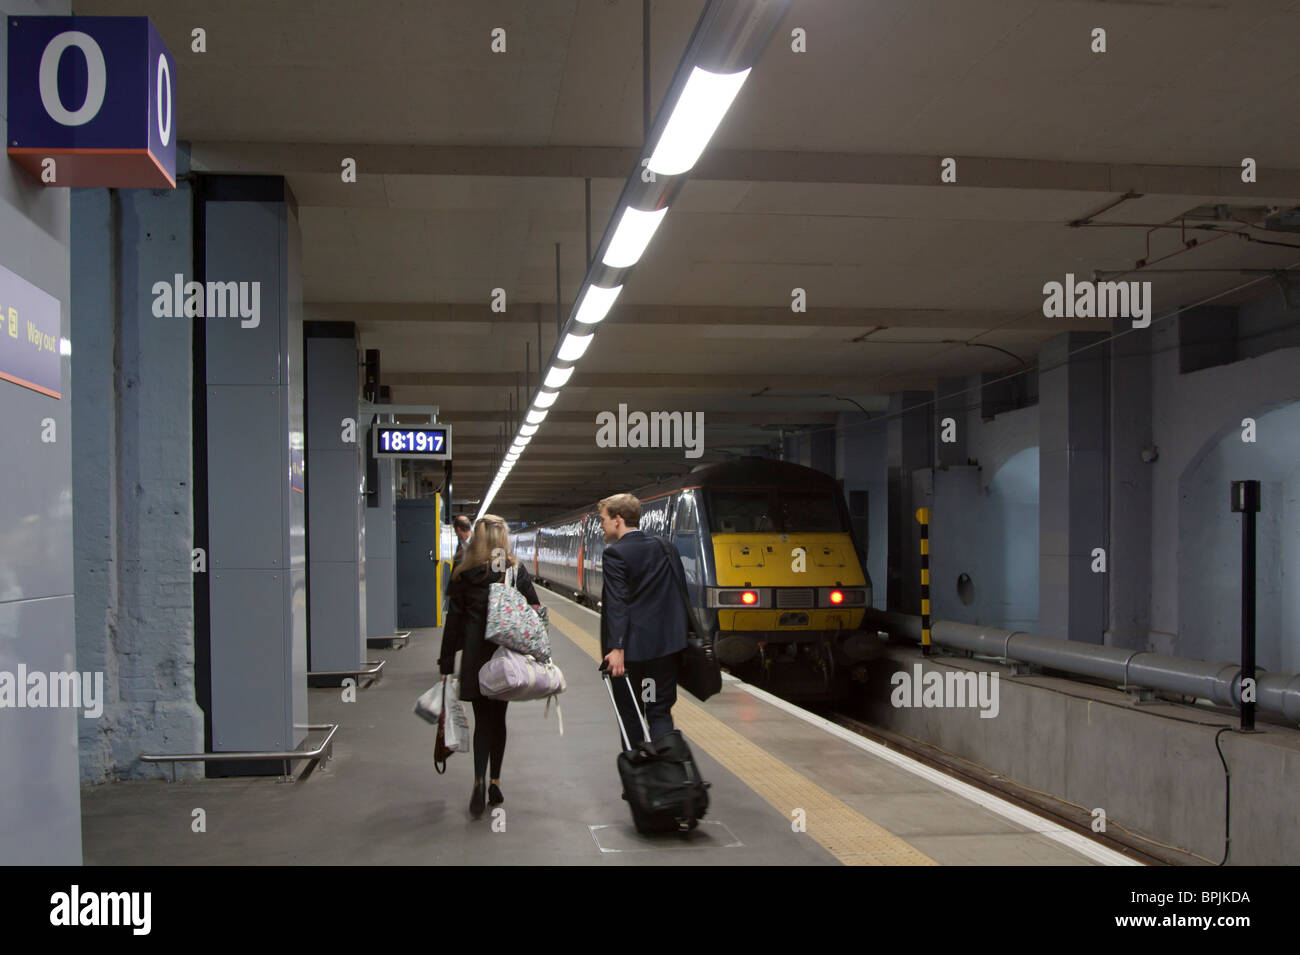 Platform 0 - Kings Cross Station - London - Stock Image